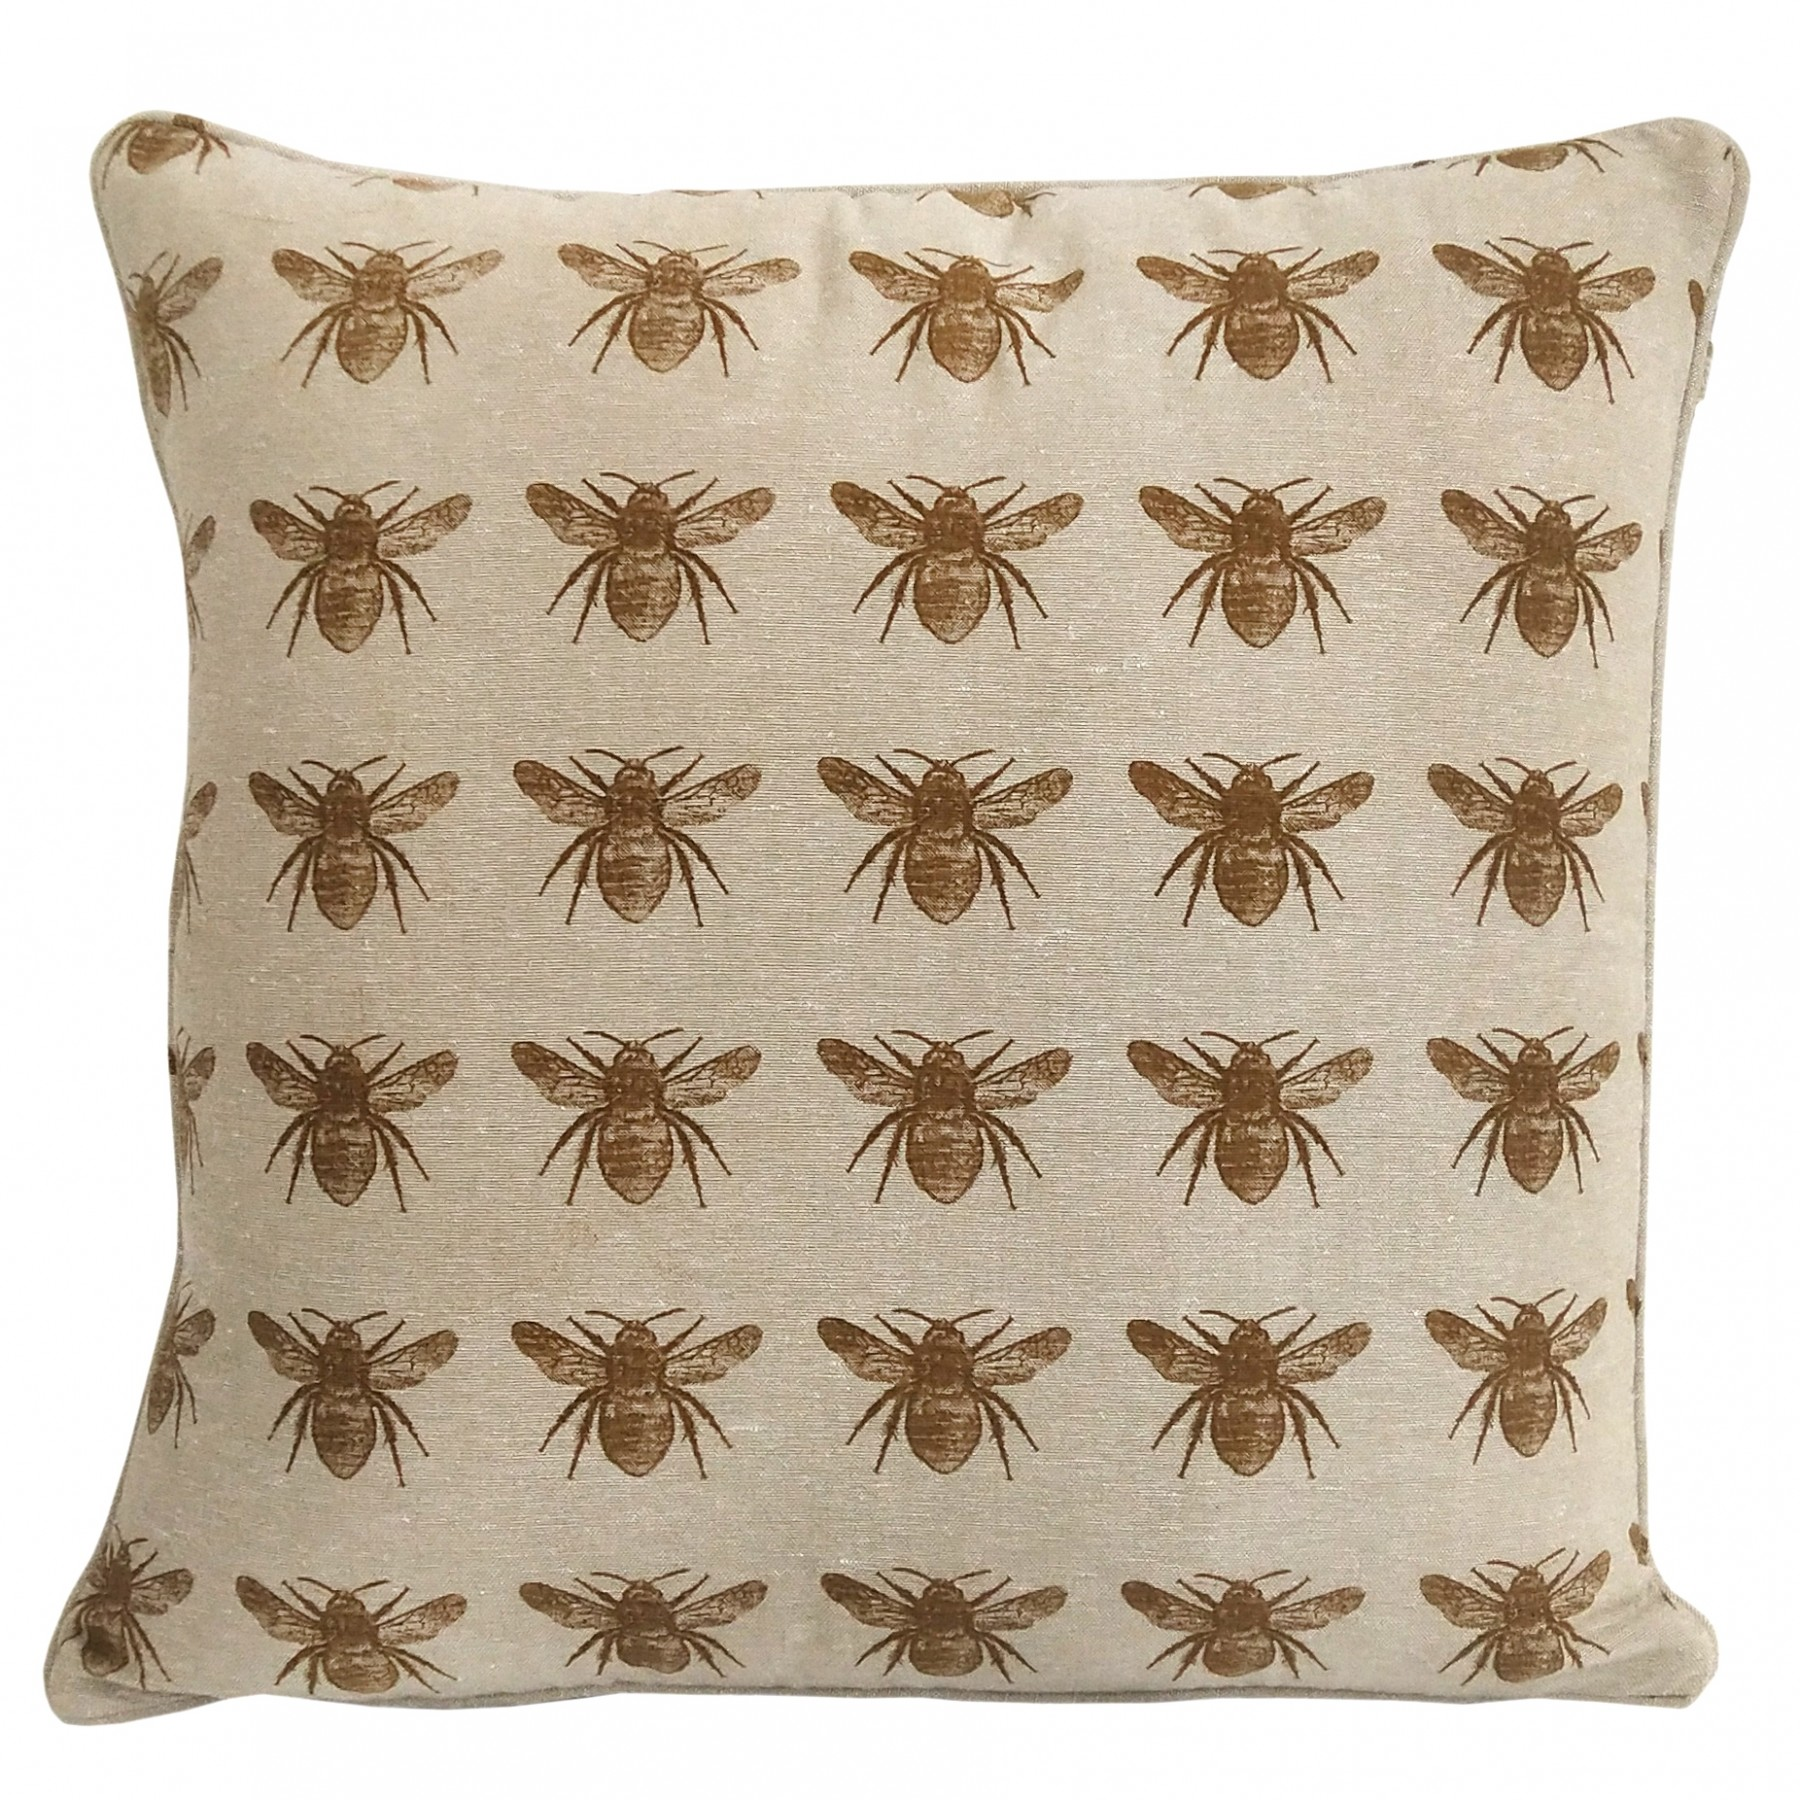 Honey Bee Cushion in Mustard Yellow